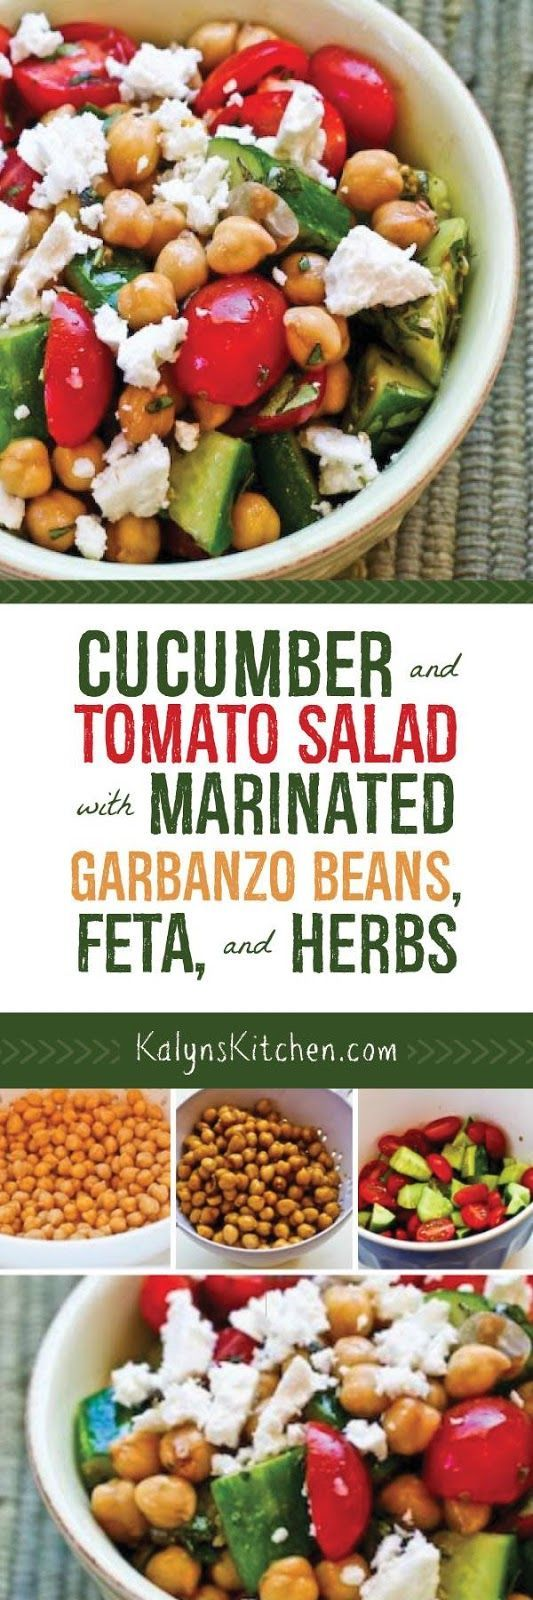 Marinating the garbanzo beans while you chop the other ingredients adds AMAZING flavor to this Cucumber and Tomato Salad with Marinated Garbanzo Beans, Feta, and Herbs! Use less beans if you want lower carbs for this salad that's vegetarian, gluten-free, and South Beach Diet Phase One. [found on KalynsKitchen.com]